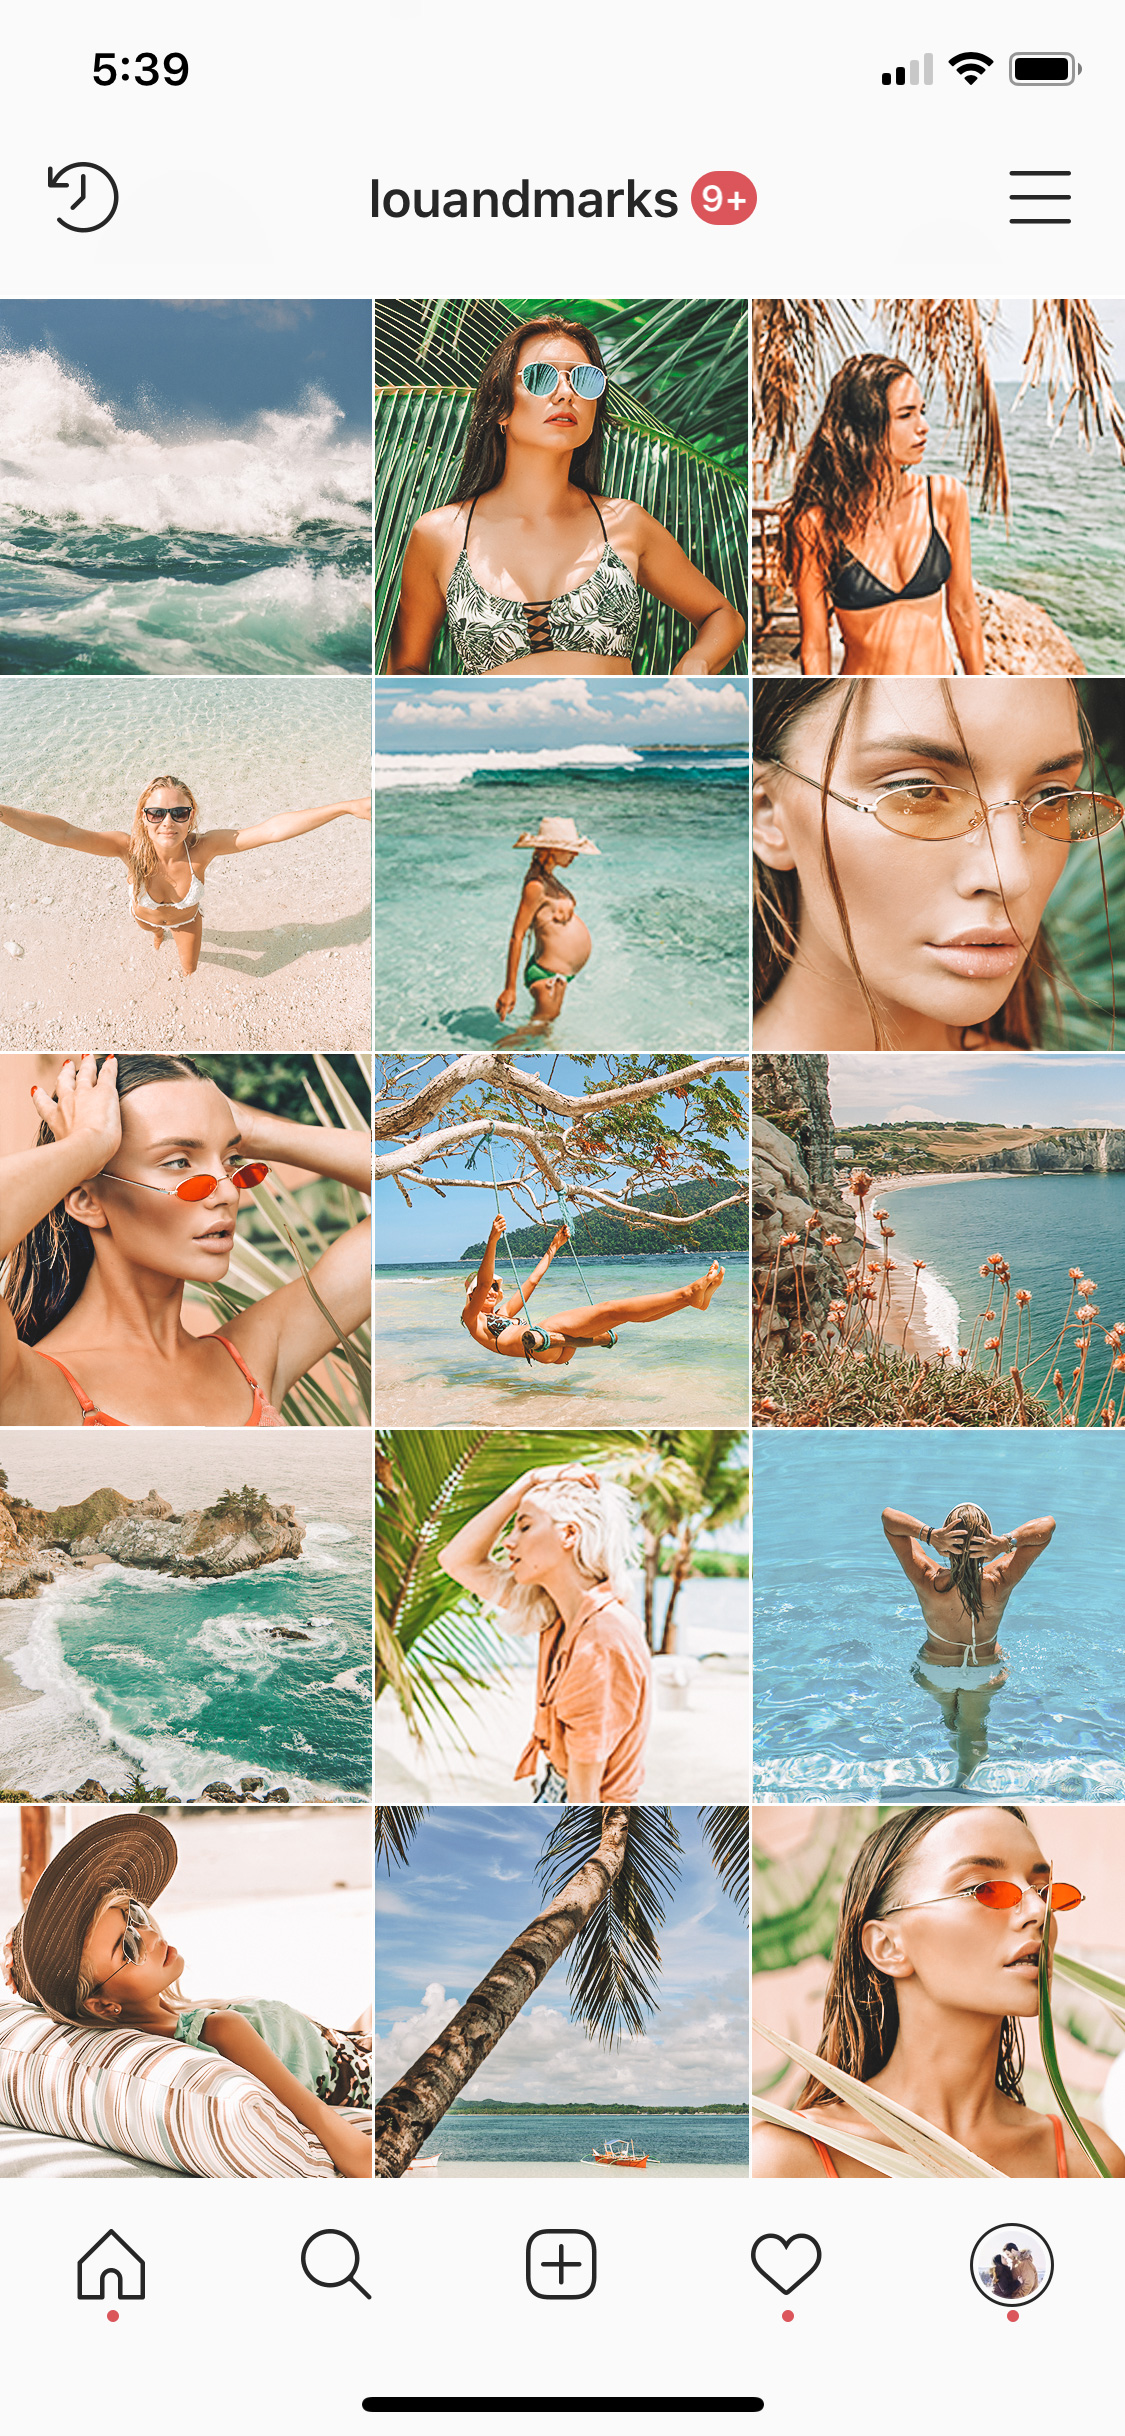 after-hawaii-INSTAGRAM-FEED-LAYOUT.jpg